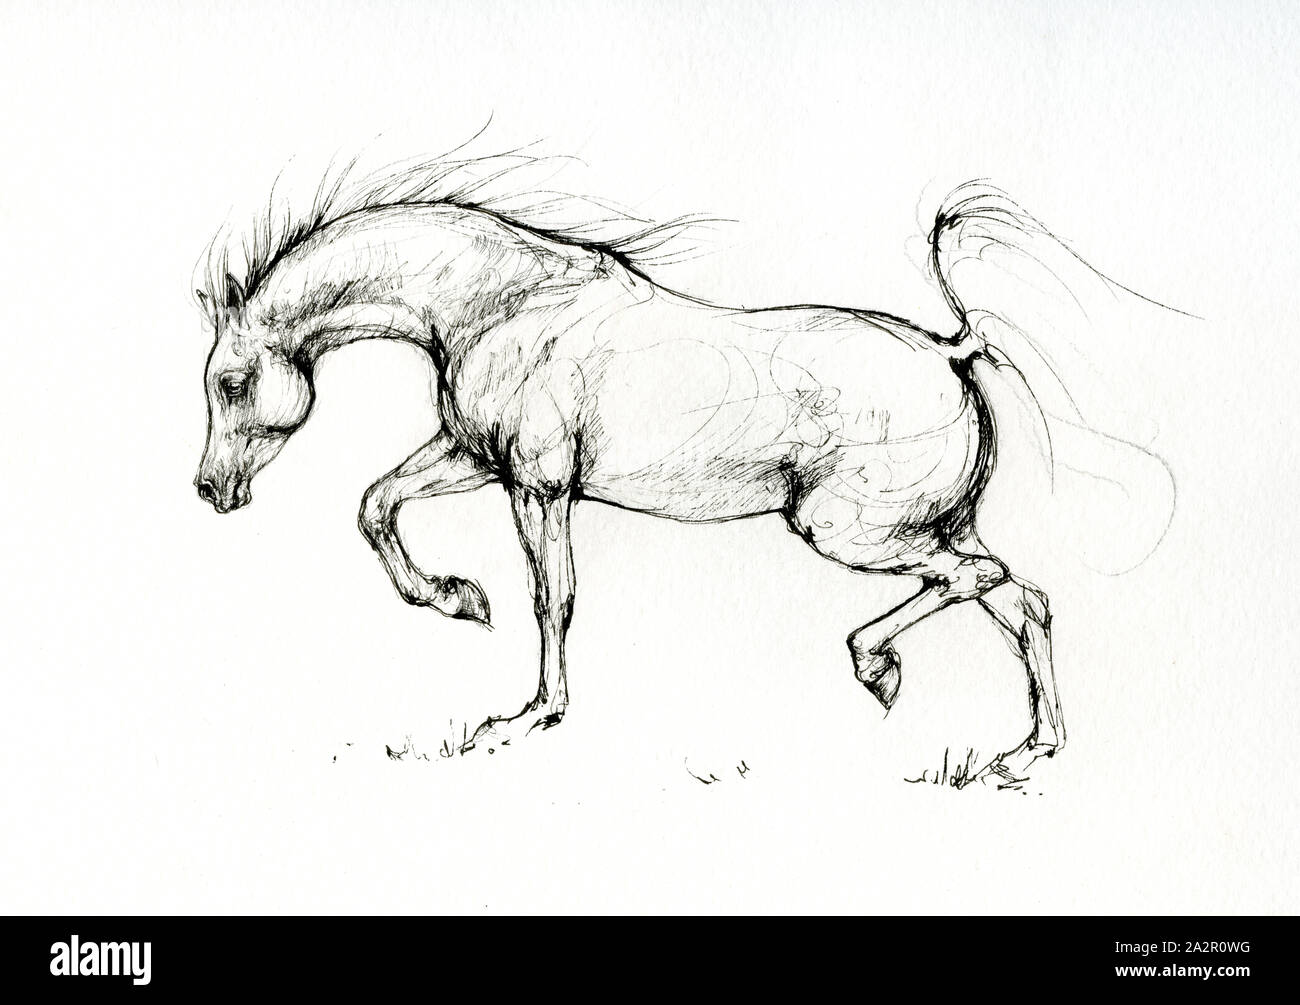 Running Horses Drawing High Resolution Stock Photography And Images Alamy